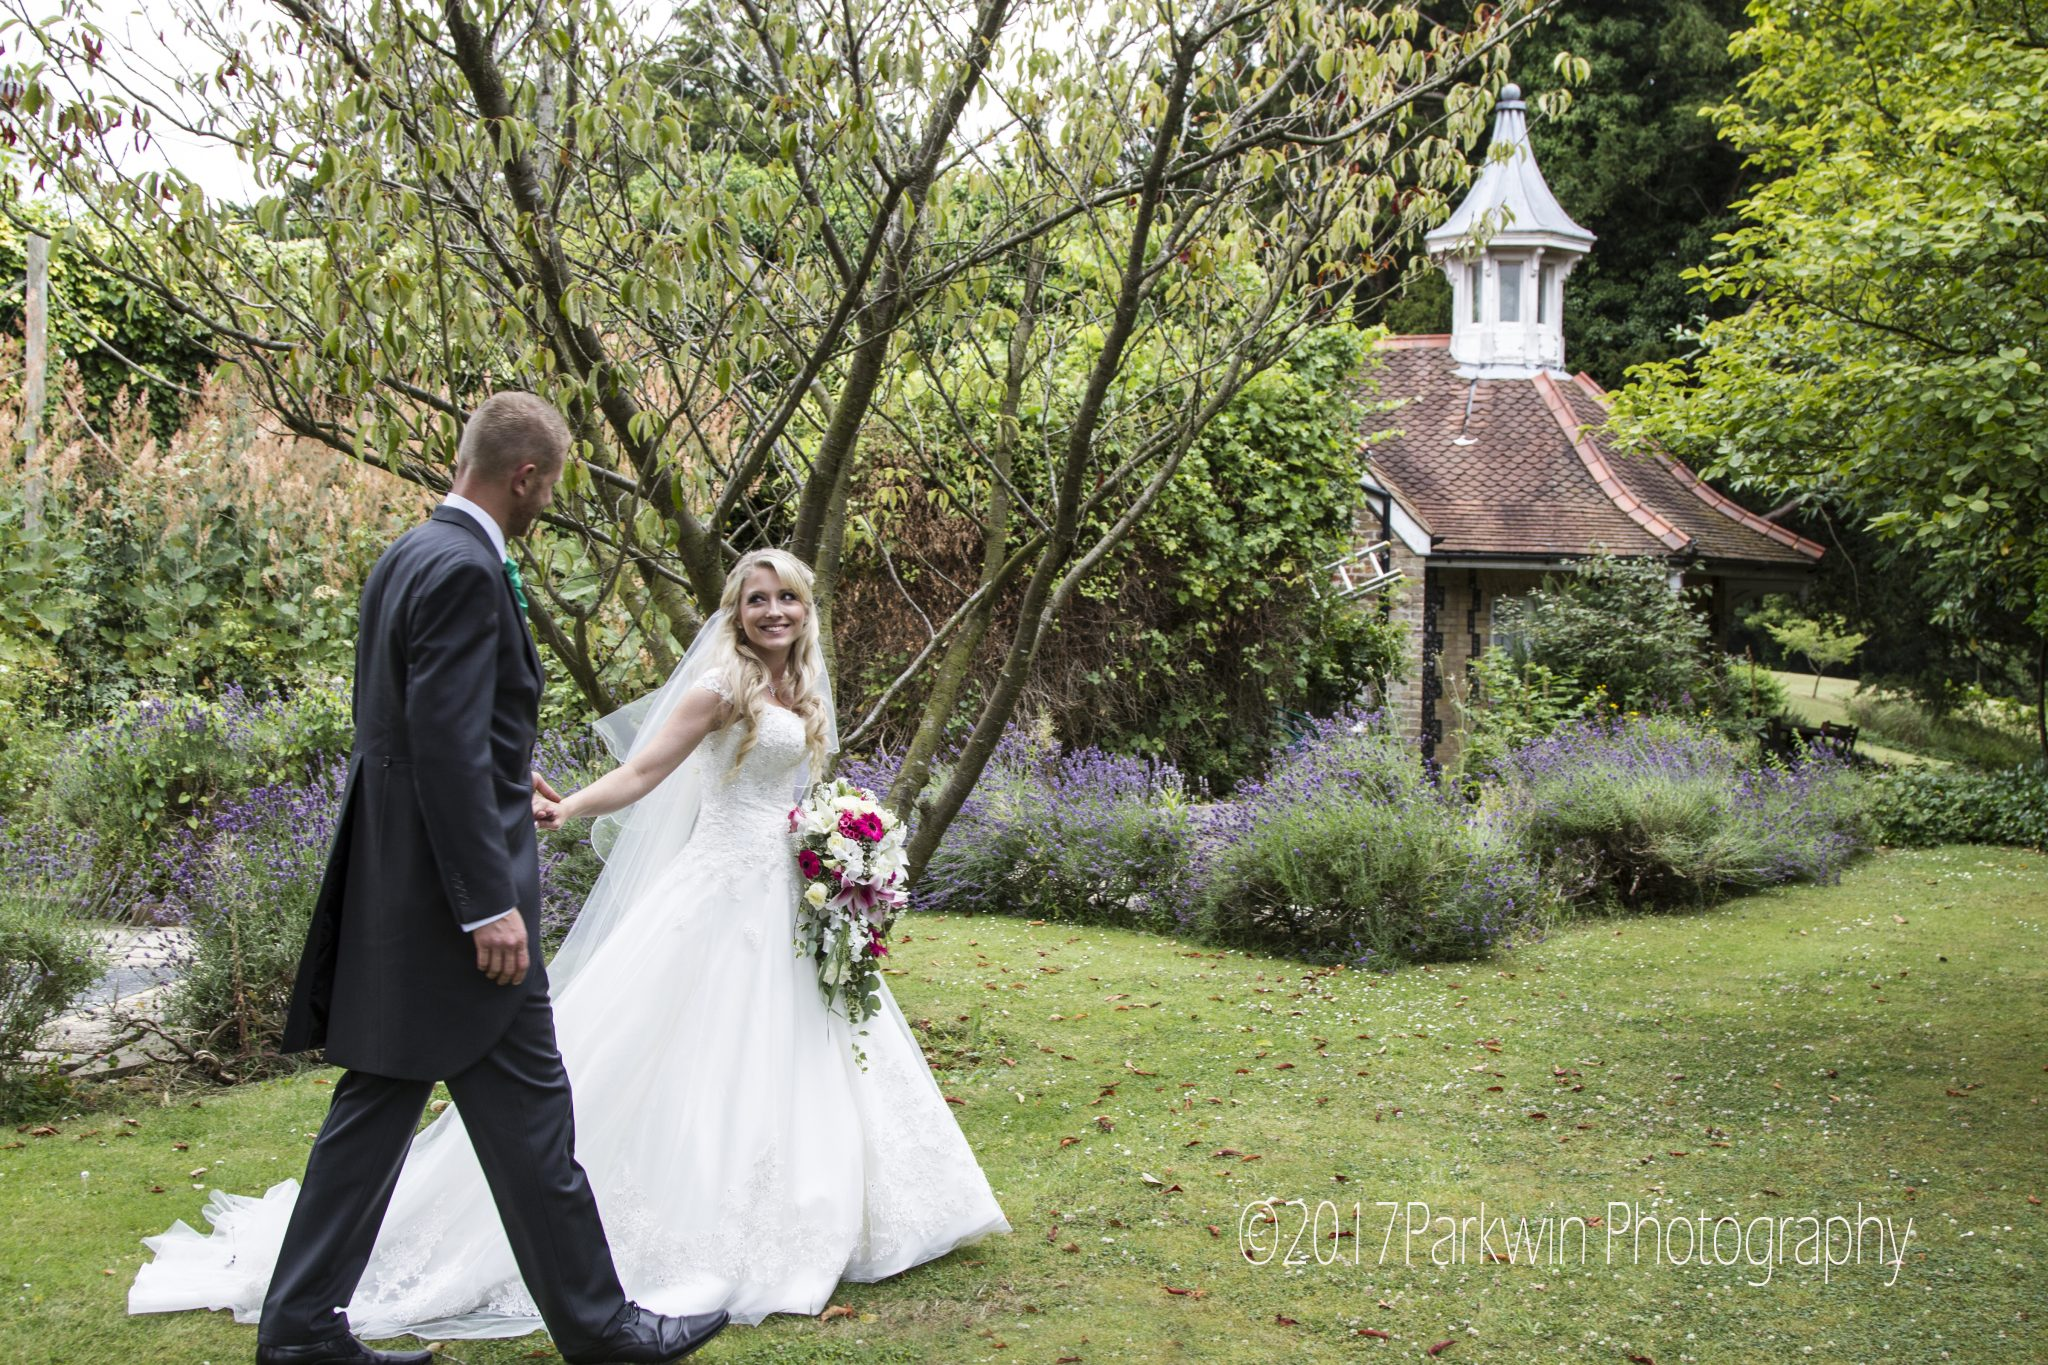 Bride and groom in Lavender Garden at Hunton Park